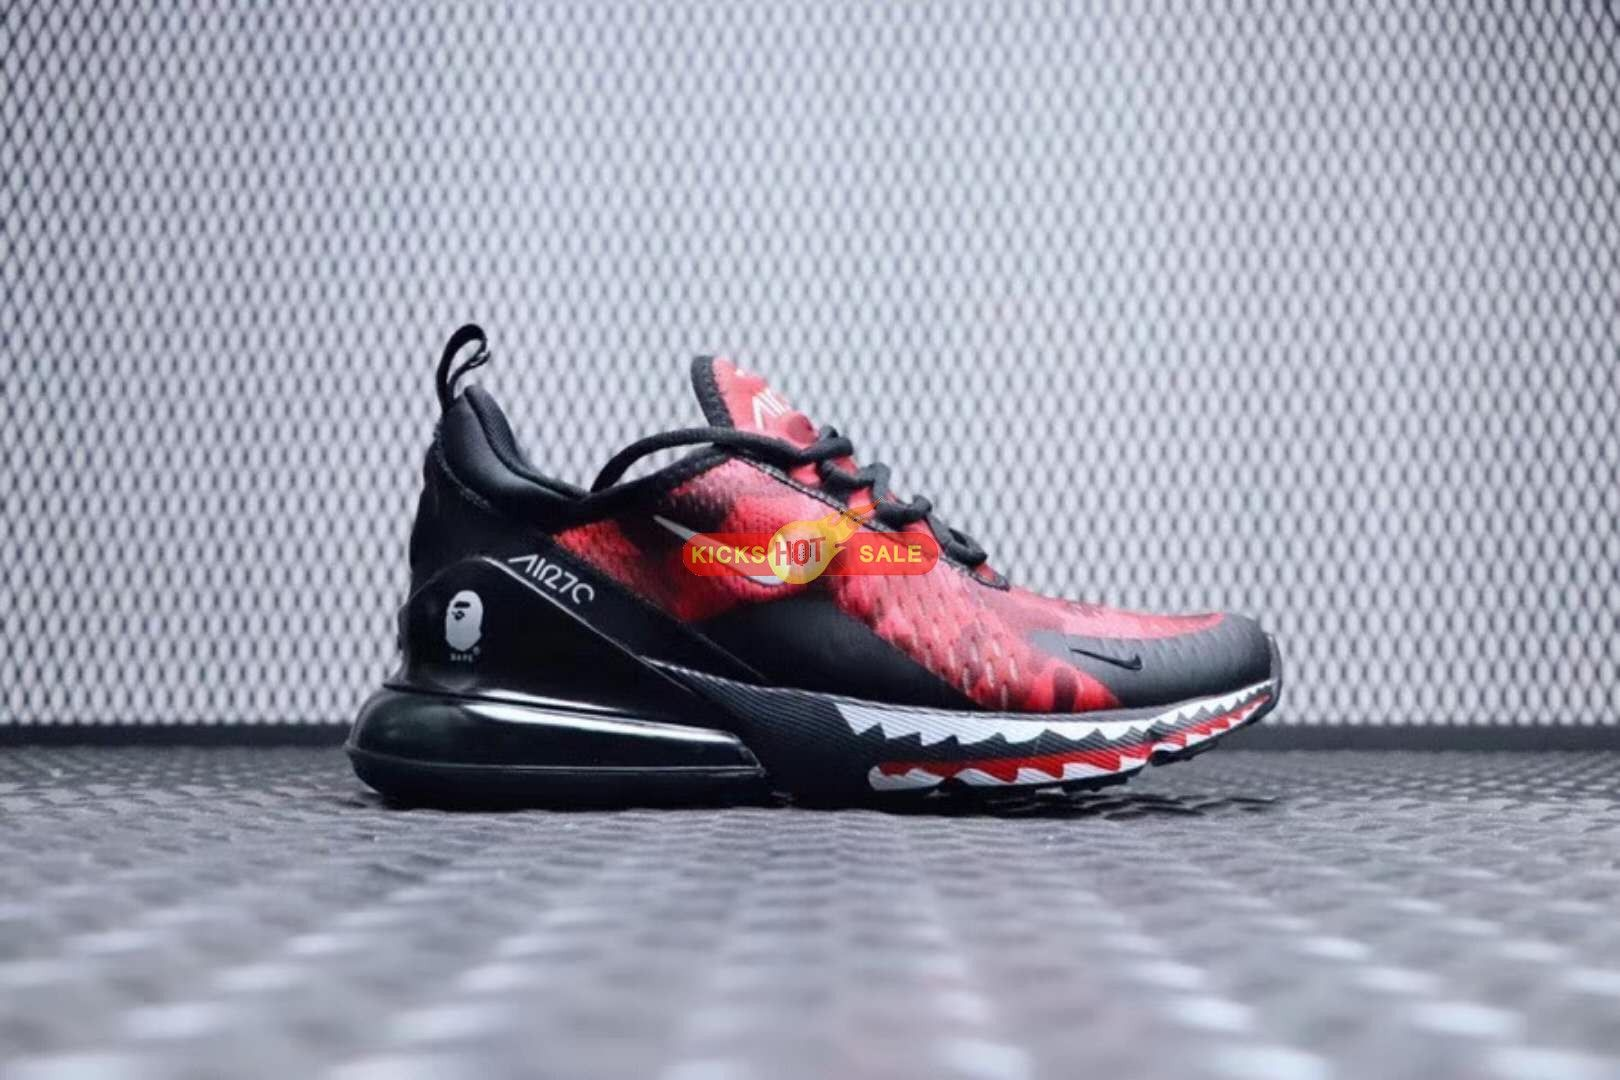 reputable site e335e ca264 In preparation for this year's Air Max Day festivities, Nike ...